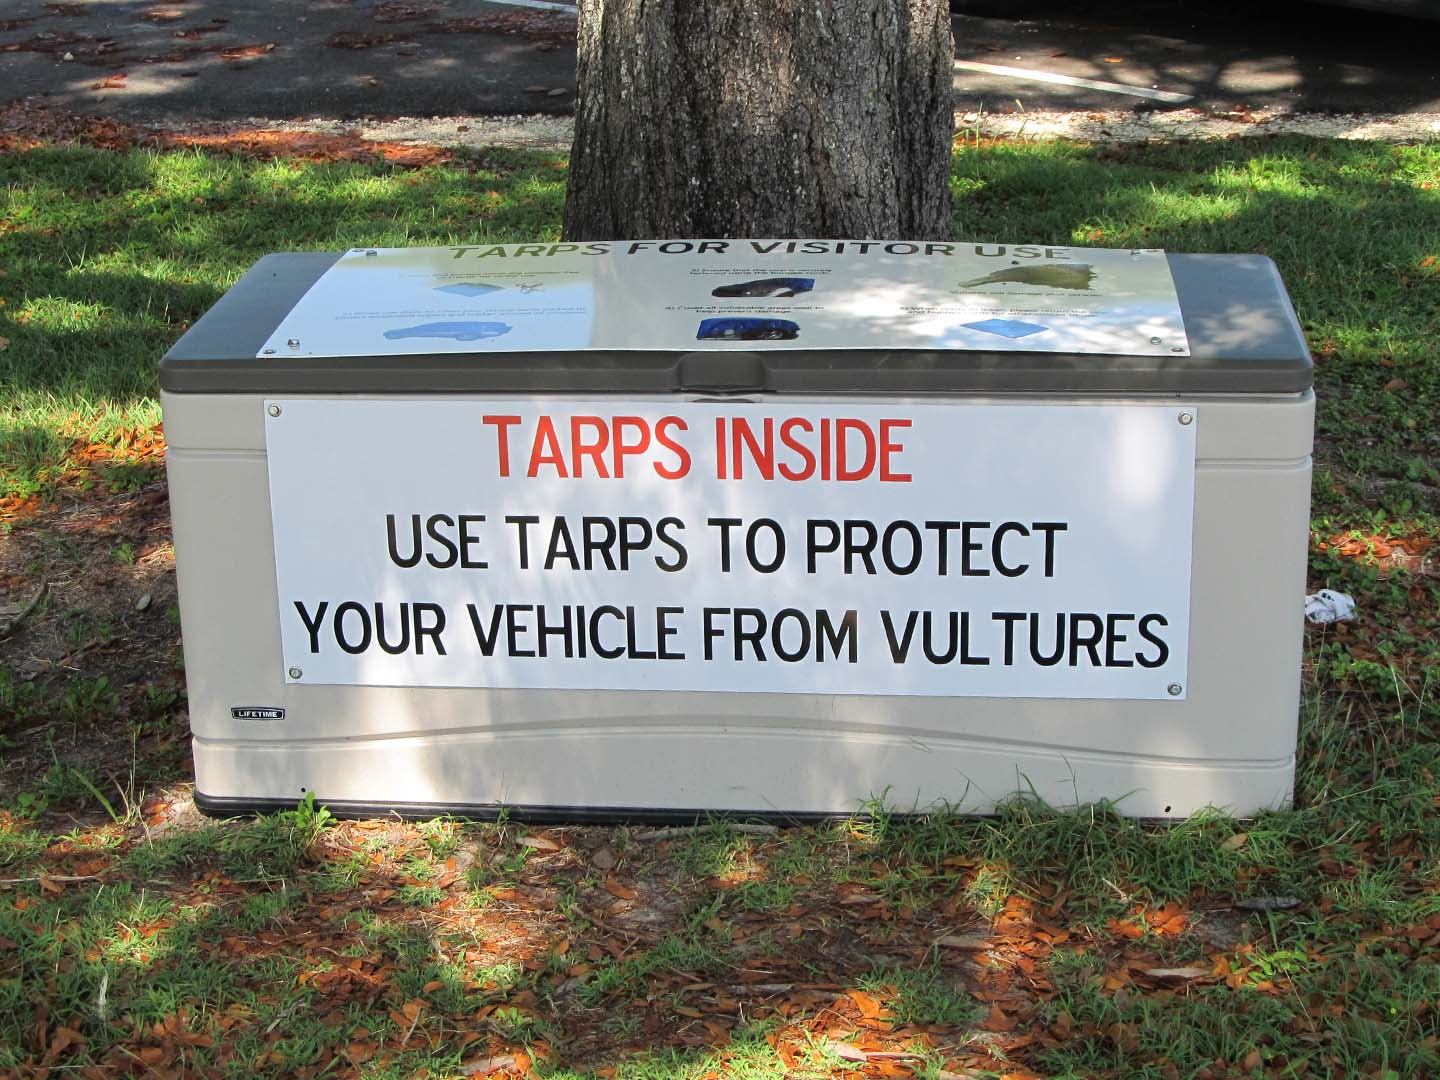 Tarps for vultures sign